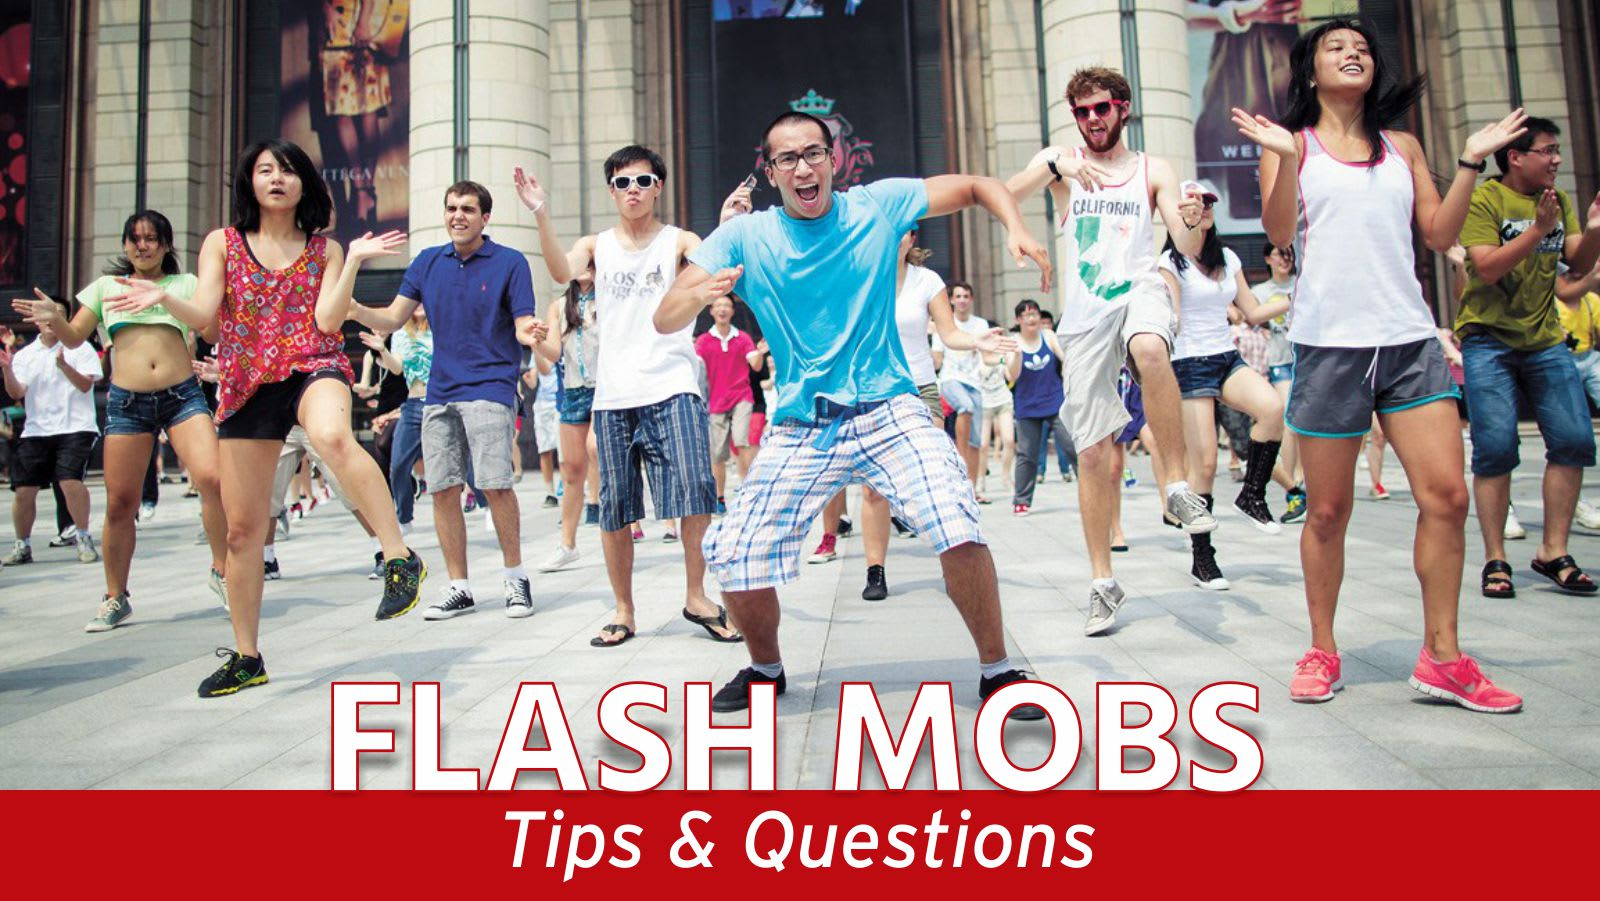 flash mobs, tips and questions about flash mobs, questions about flash mobs, flash mobs, dance, organize a flash mob, choreo n concept